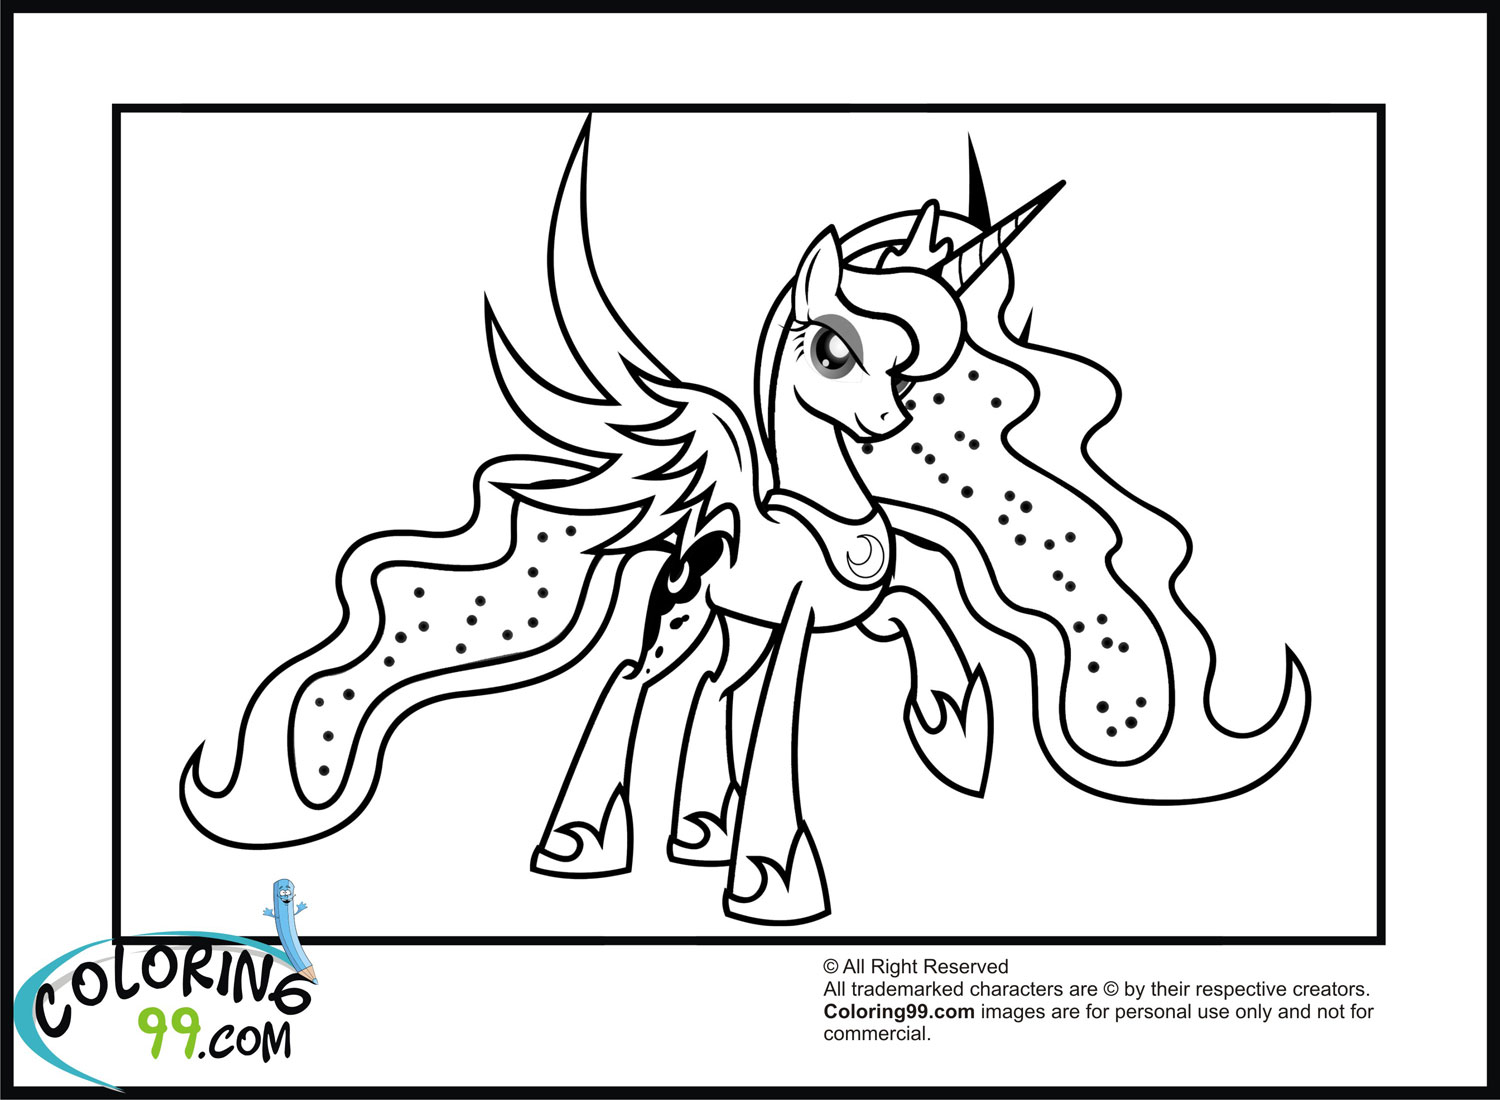 Coloring Pages My Little Pony Princess Luna : Pin princess luna coloring page ajilbabcom portal on pinterest